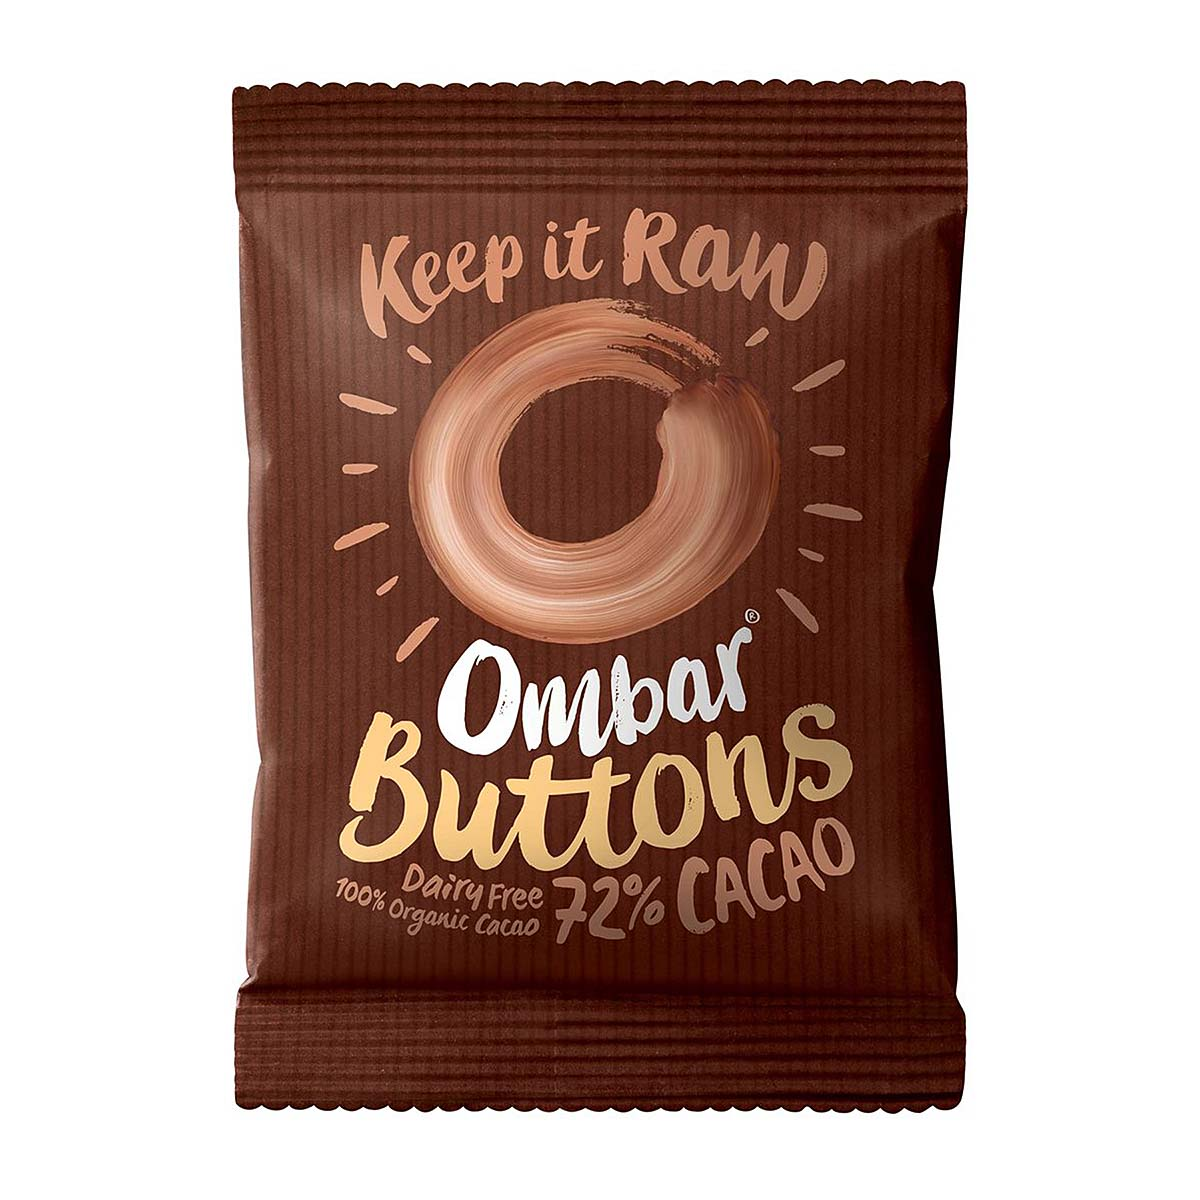 Ombar Organic 72% Cacao Buttons (25g)